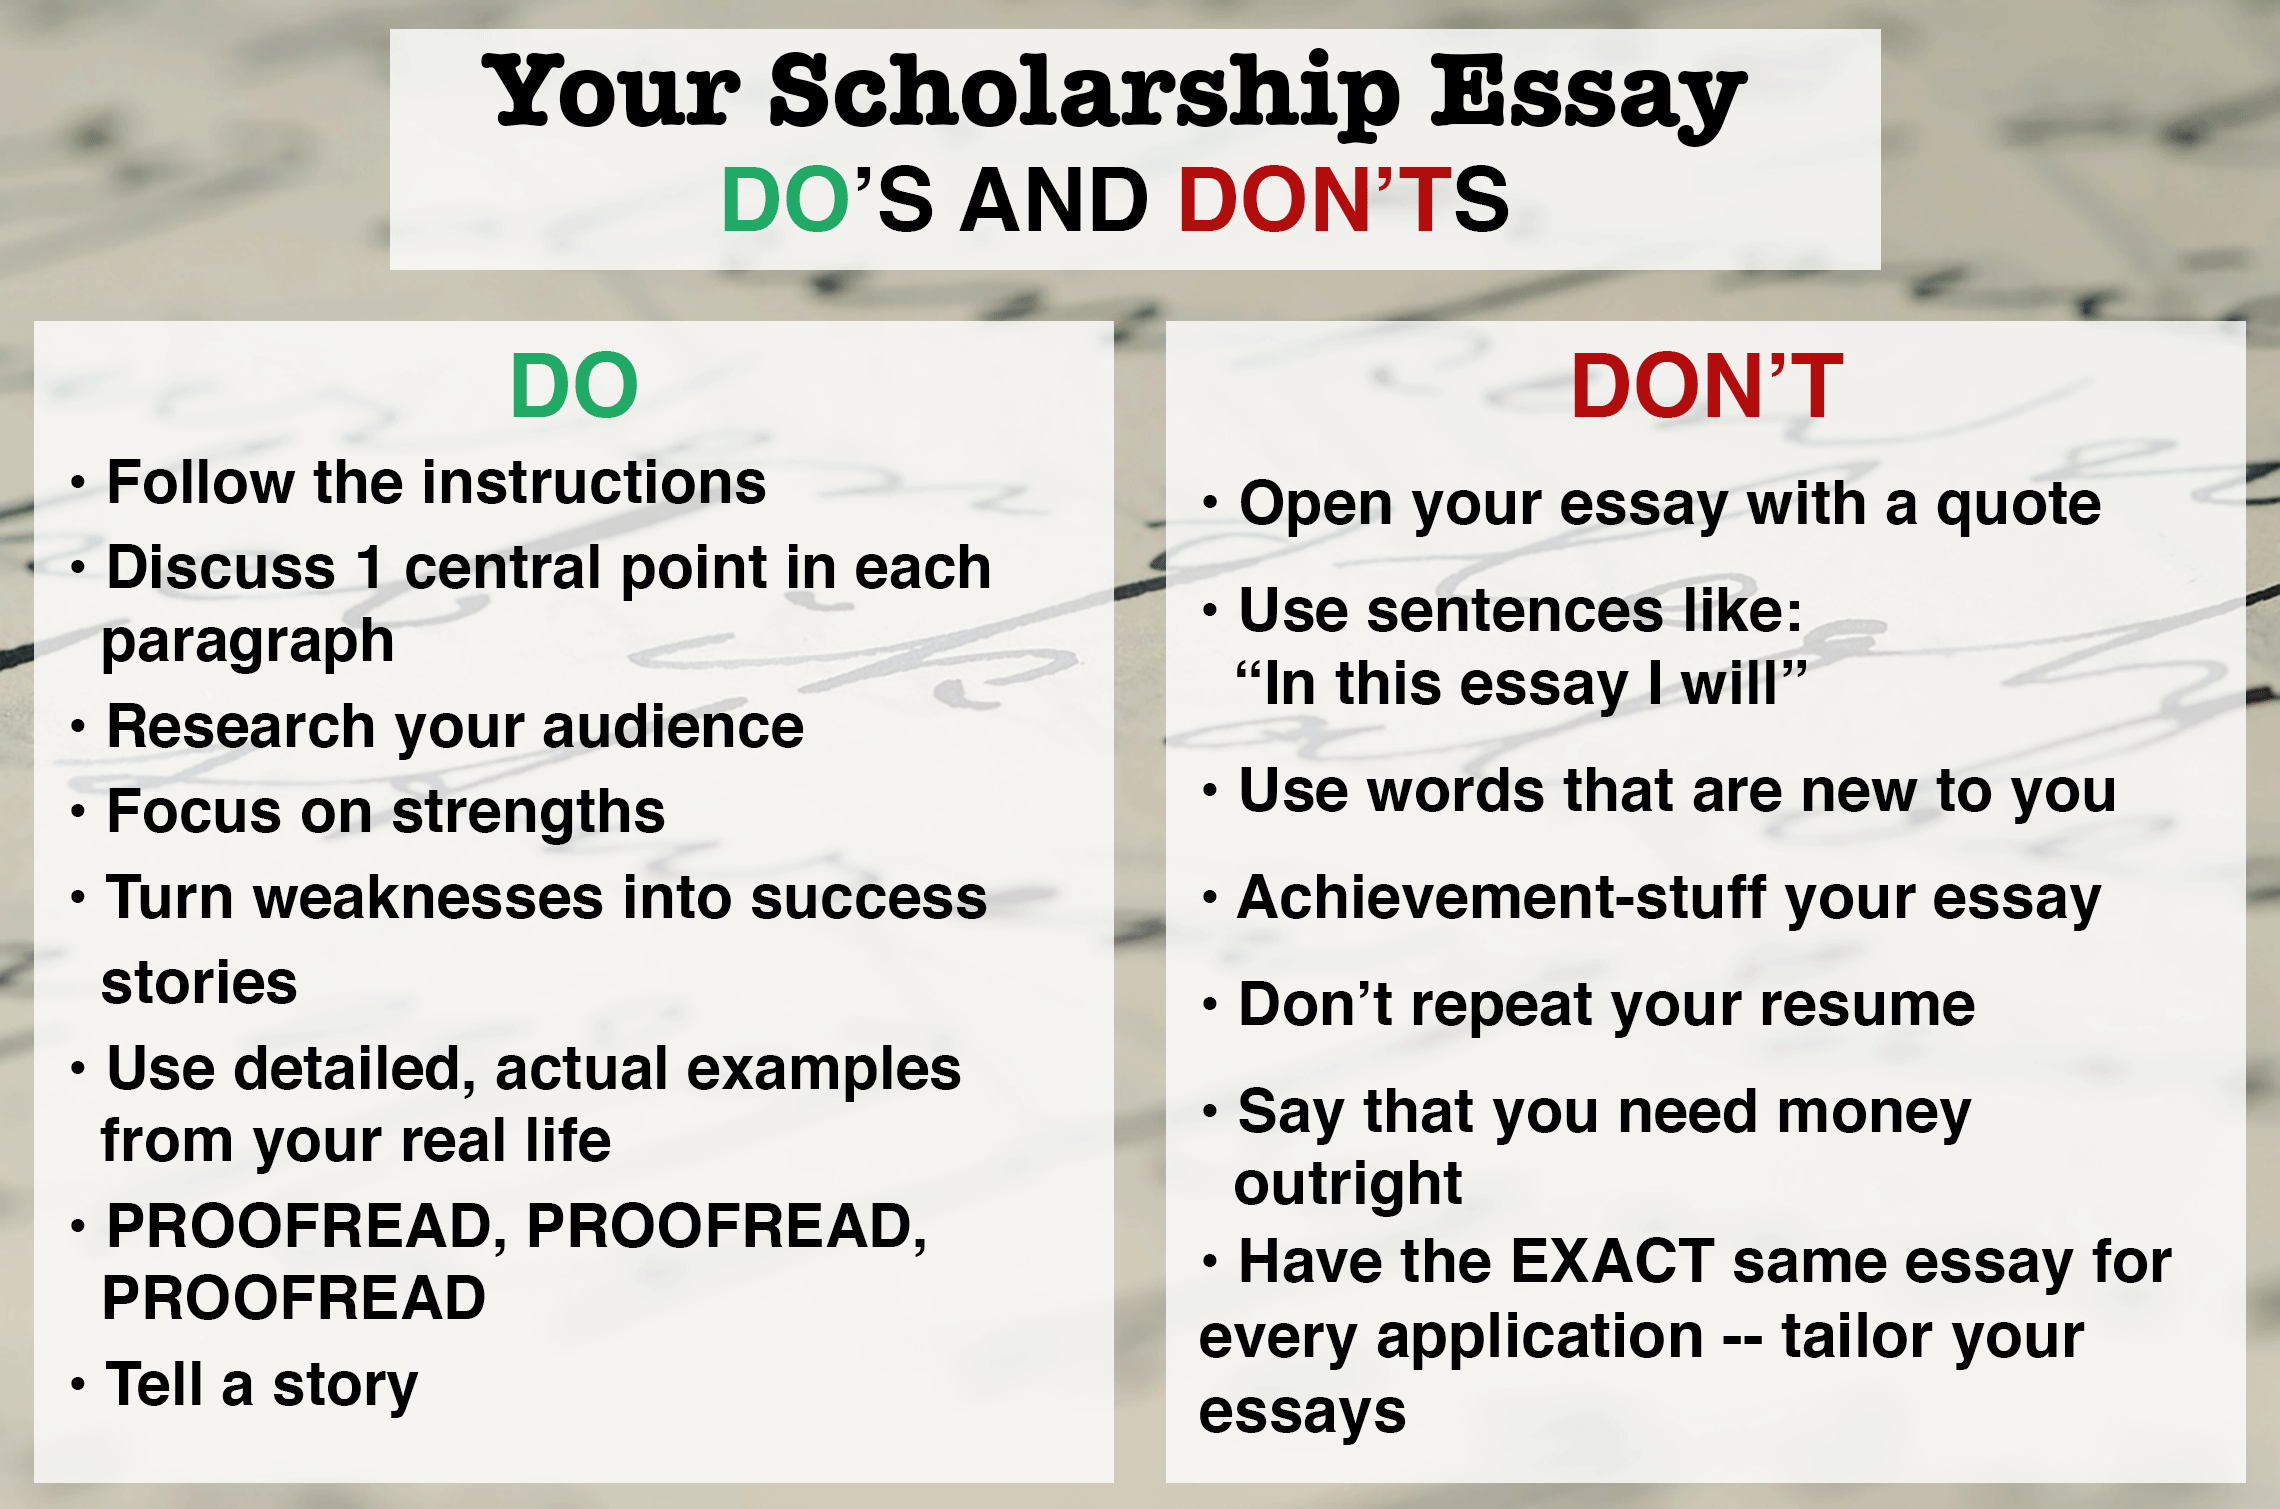 scholarships on essays Scholarship providers are looking for students who exemplify their values.